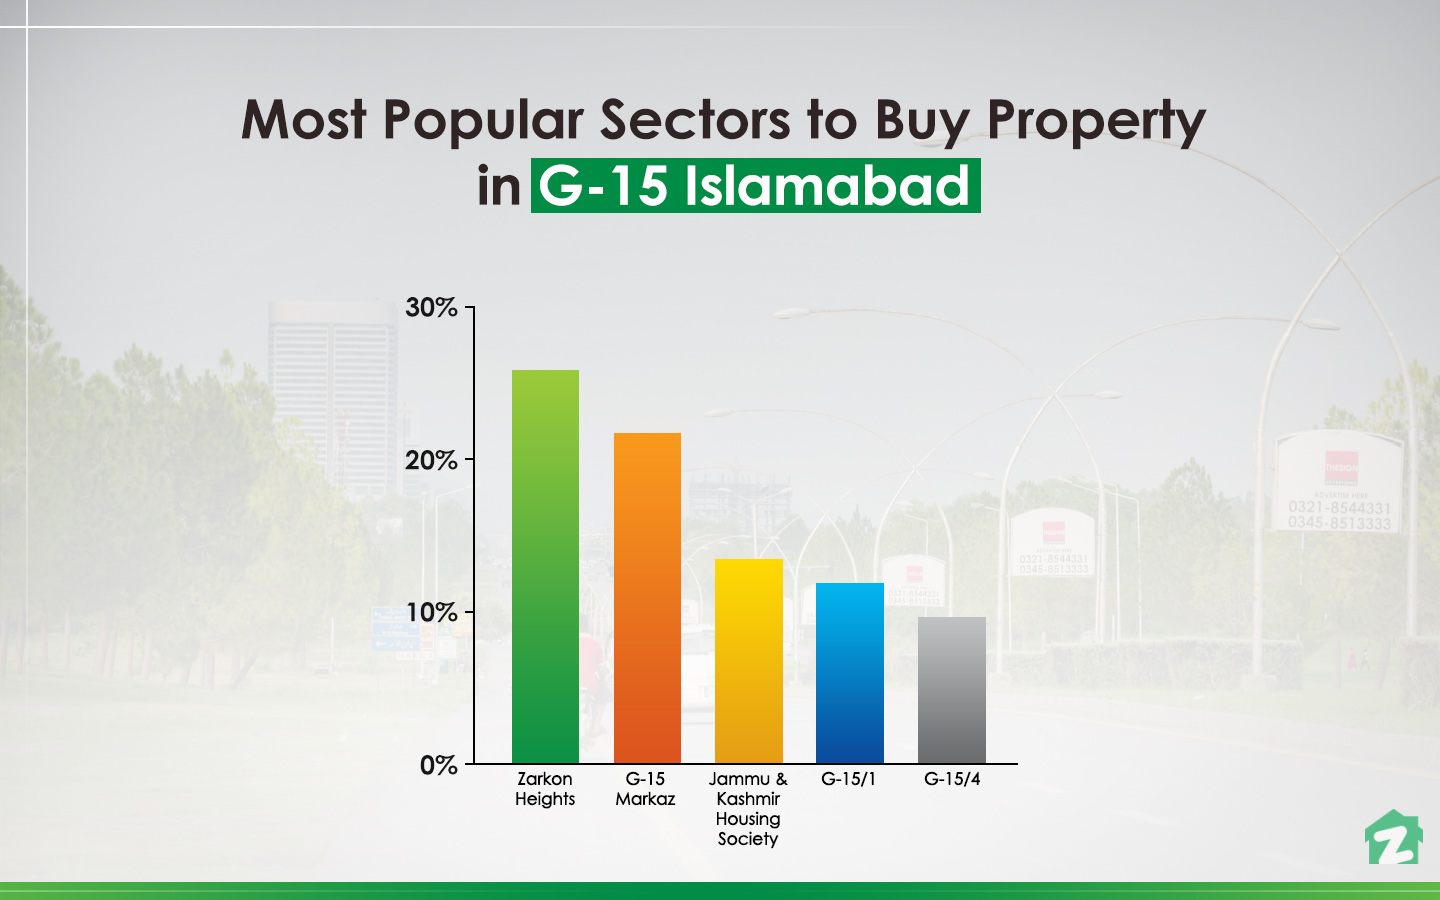 Most popular area to buy property in G-15 Islamabad is Zarkon Heights